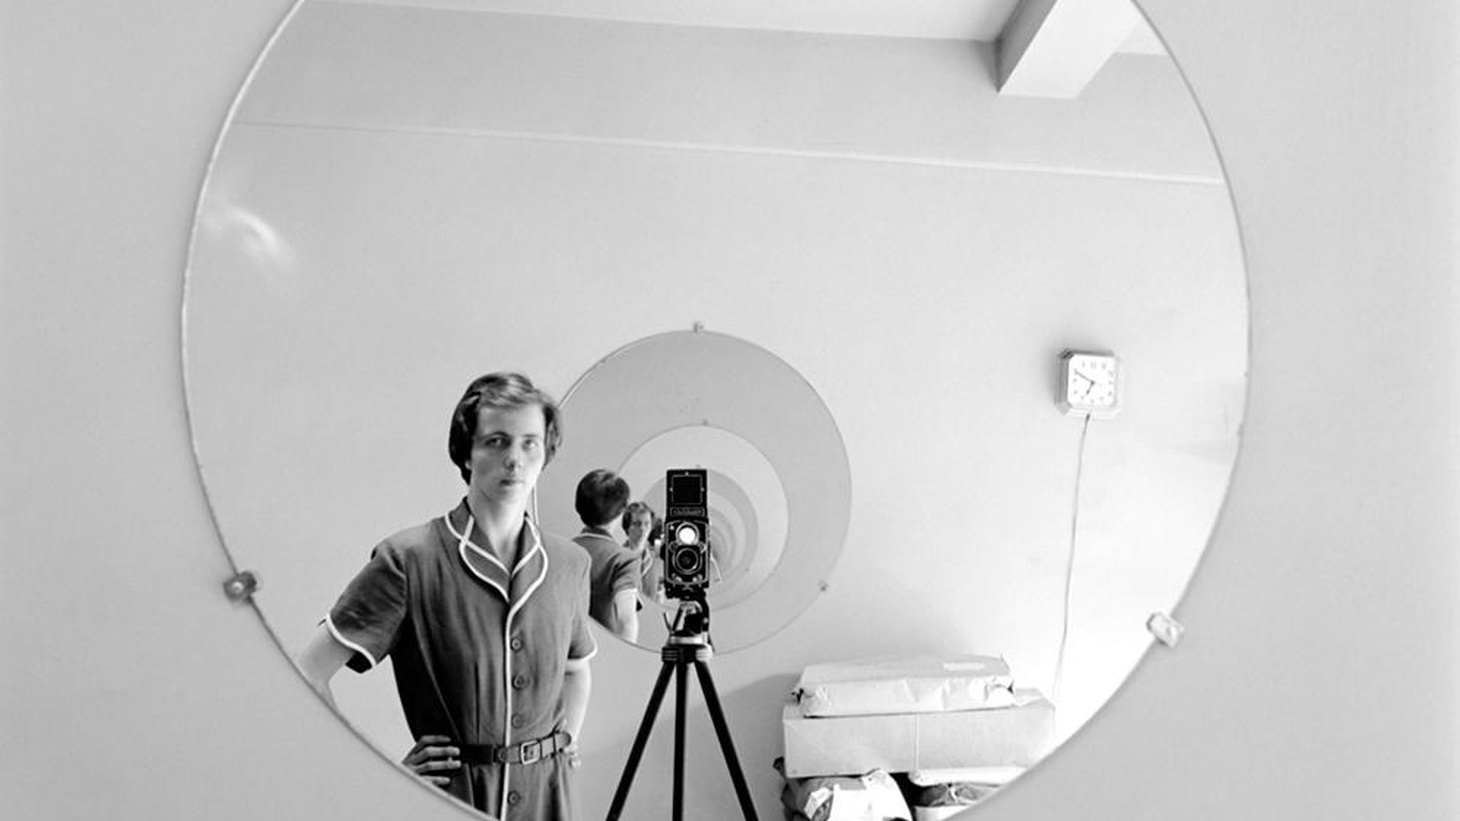 """""""I didn't know if it was good but I thought it was really good."""" John Maloof on finding a box of photos, a pivotal moment that led to the doc """"Finding Vivian Maier."""""""